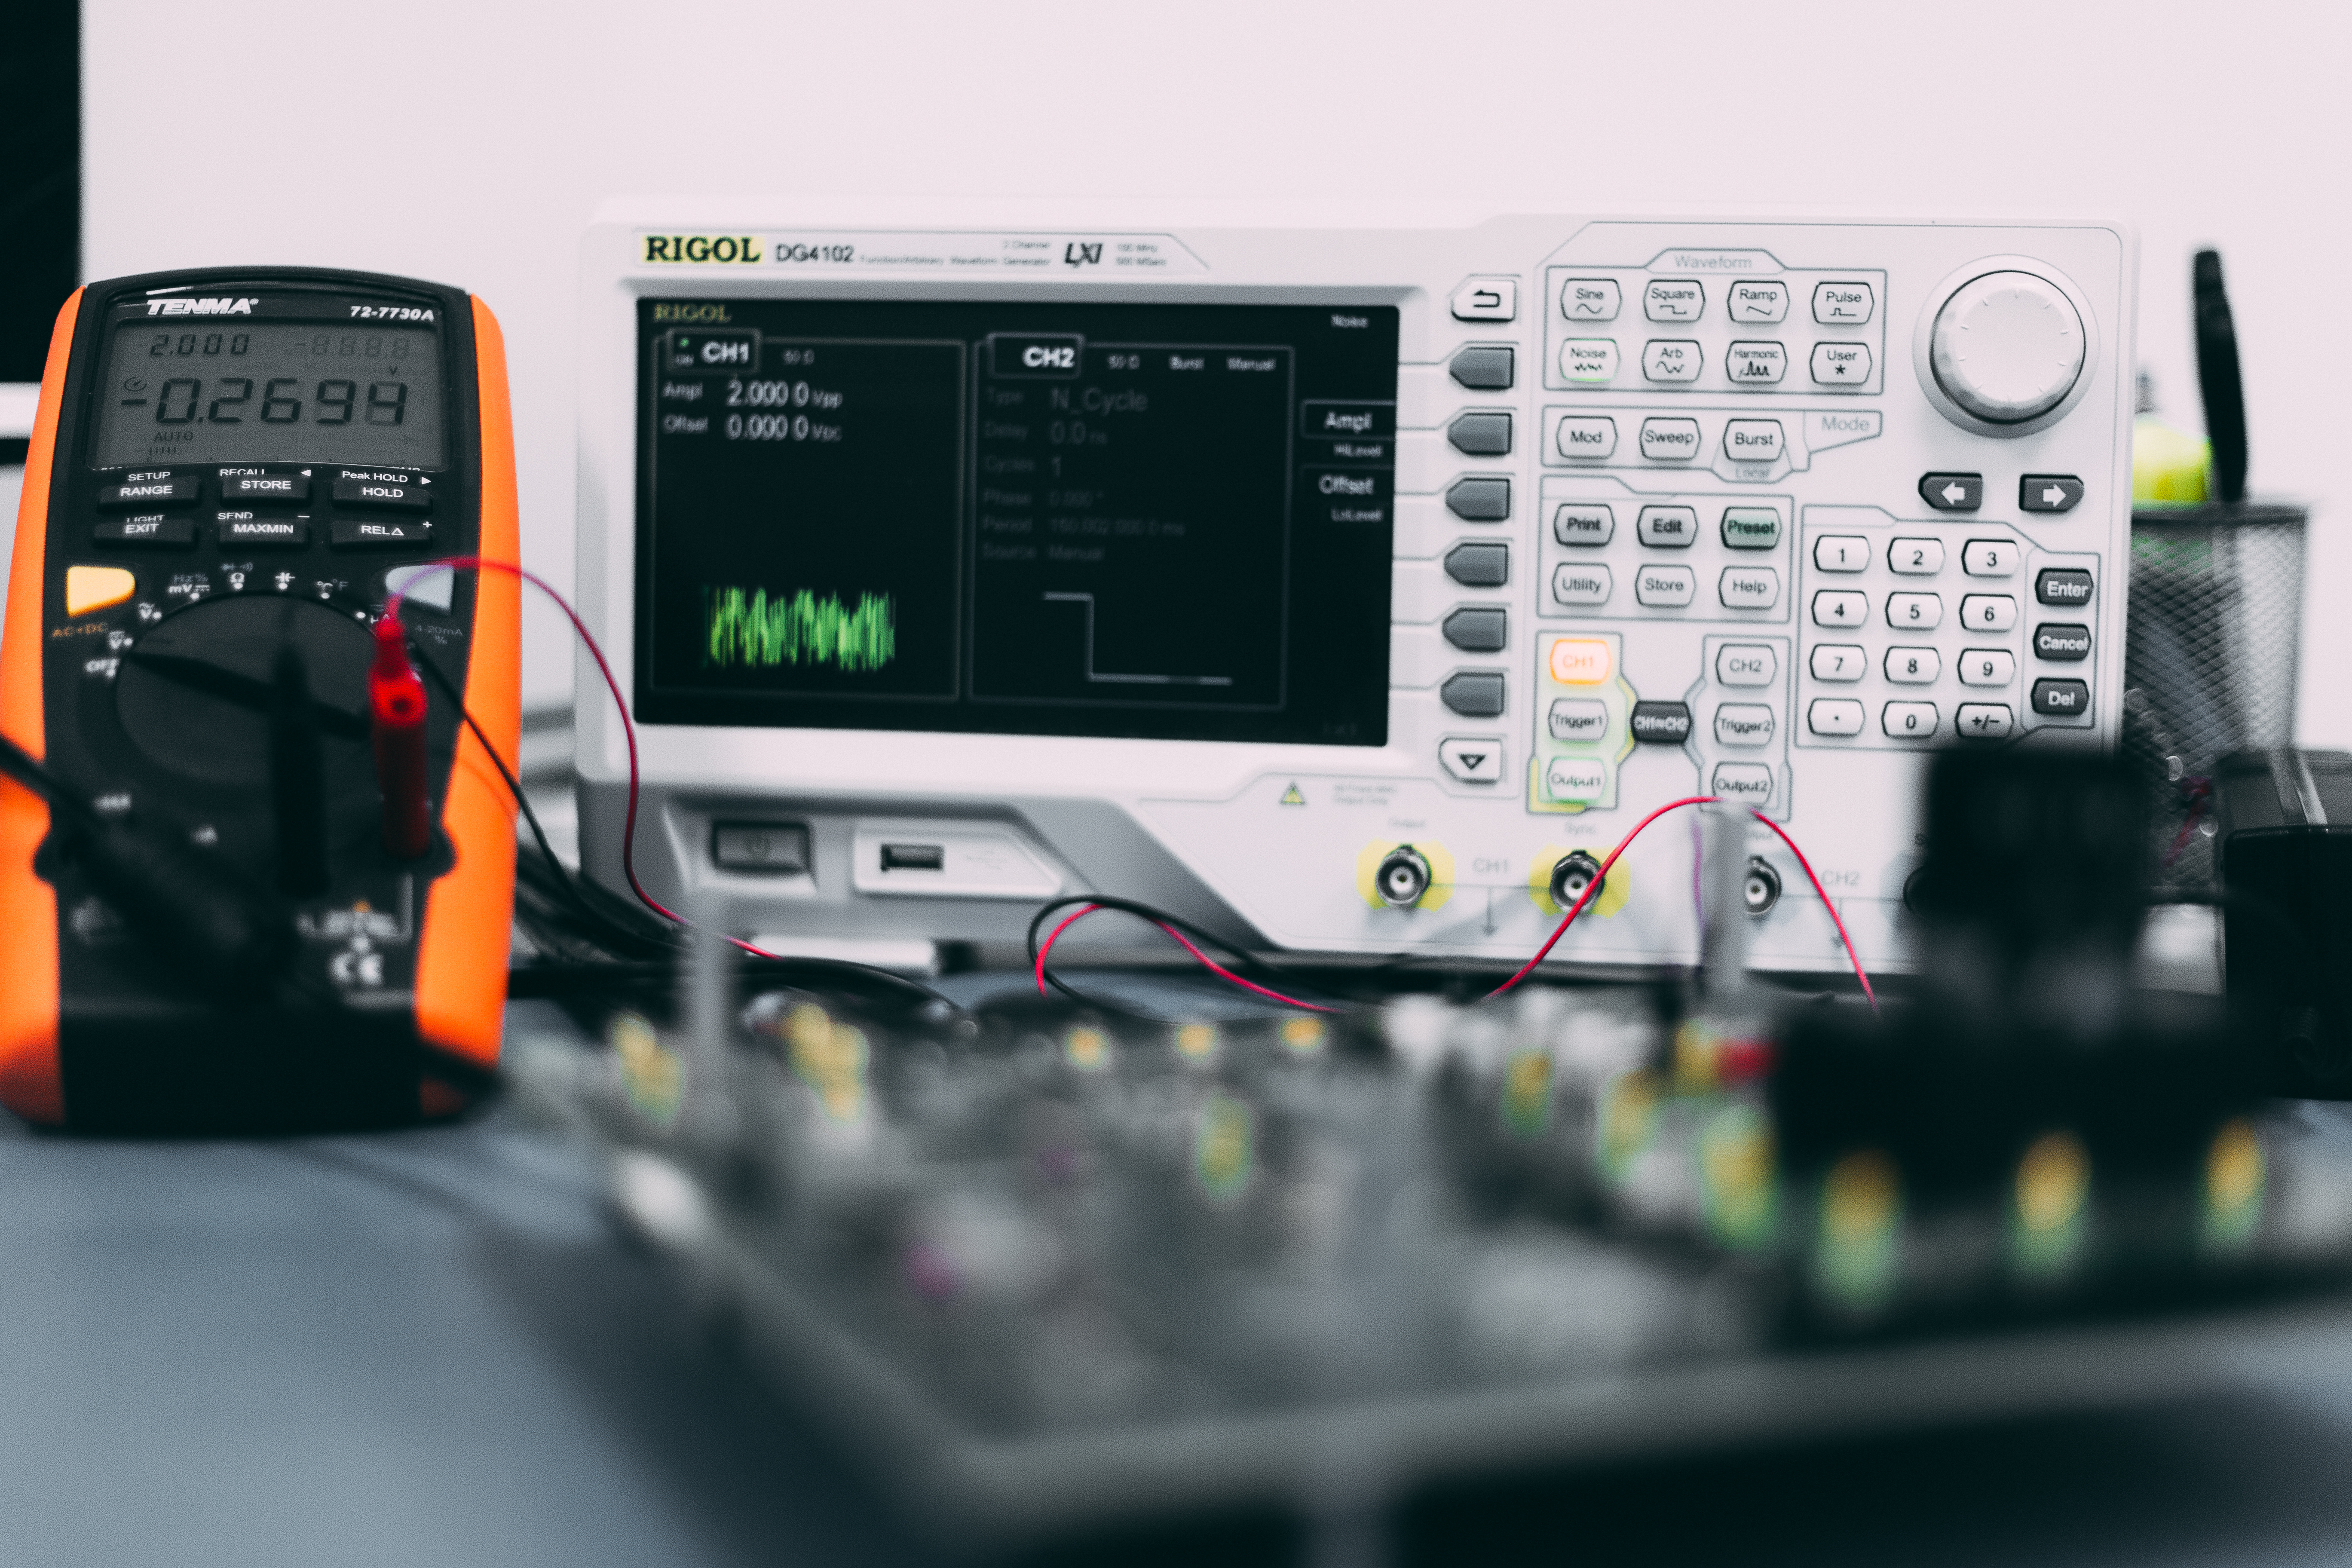 Jobs Caeleste How To Organise Electronic Components Circuit Simulation He She Will Organize Manage And Represent The Hardware Software Test Team That Is Responsible For Verification Characterization